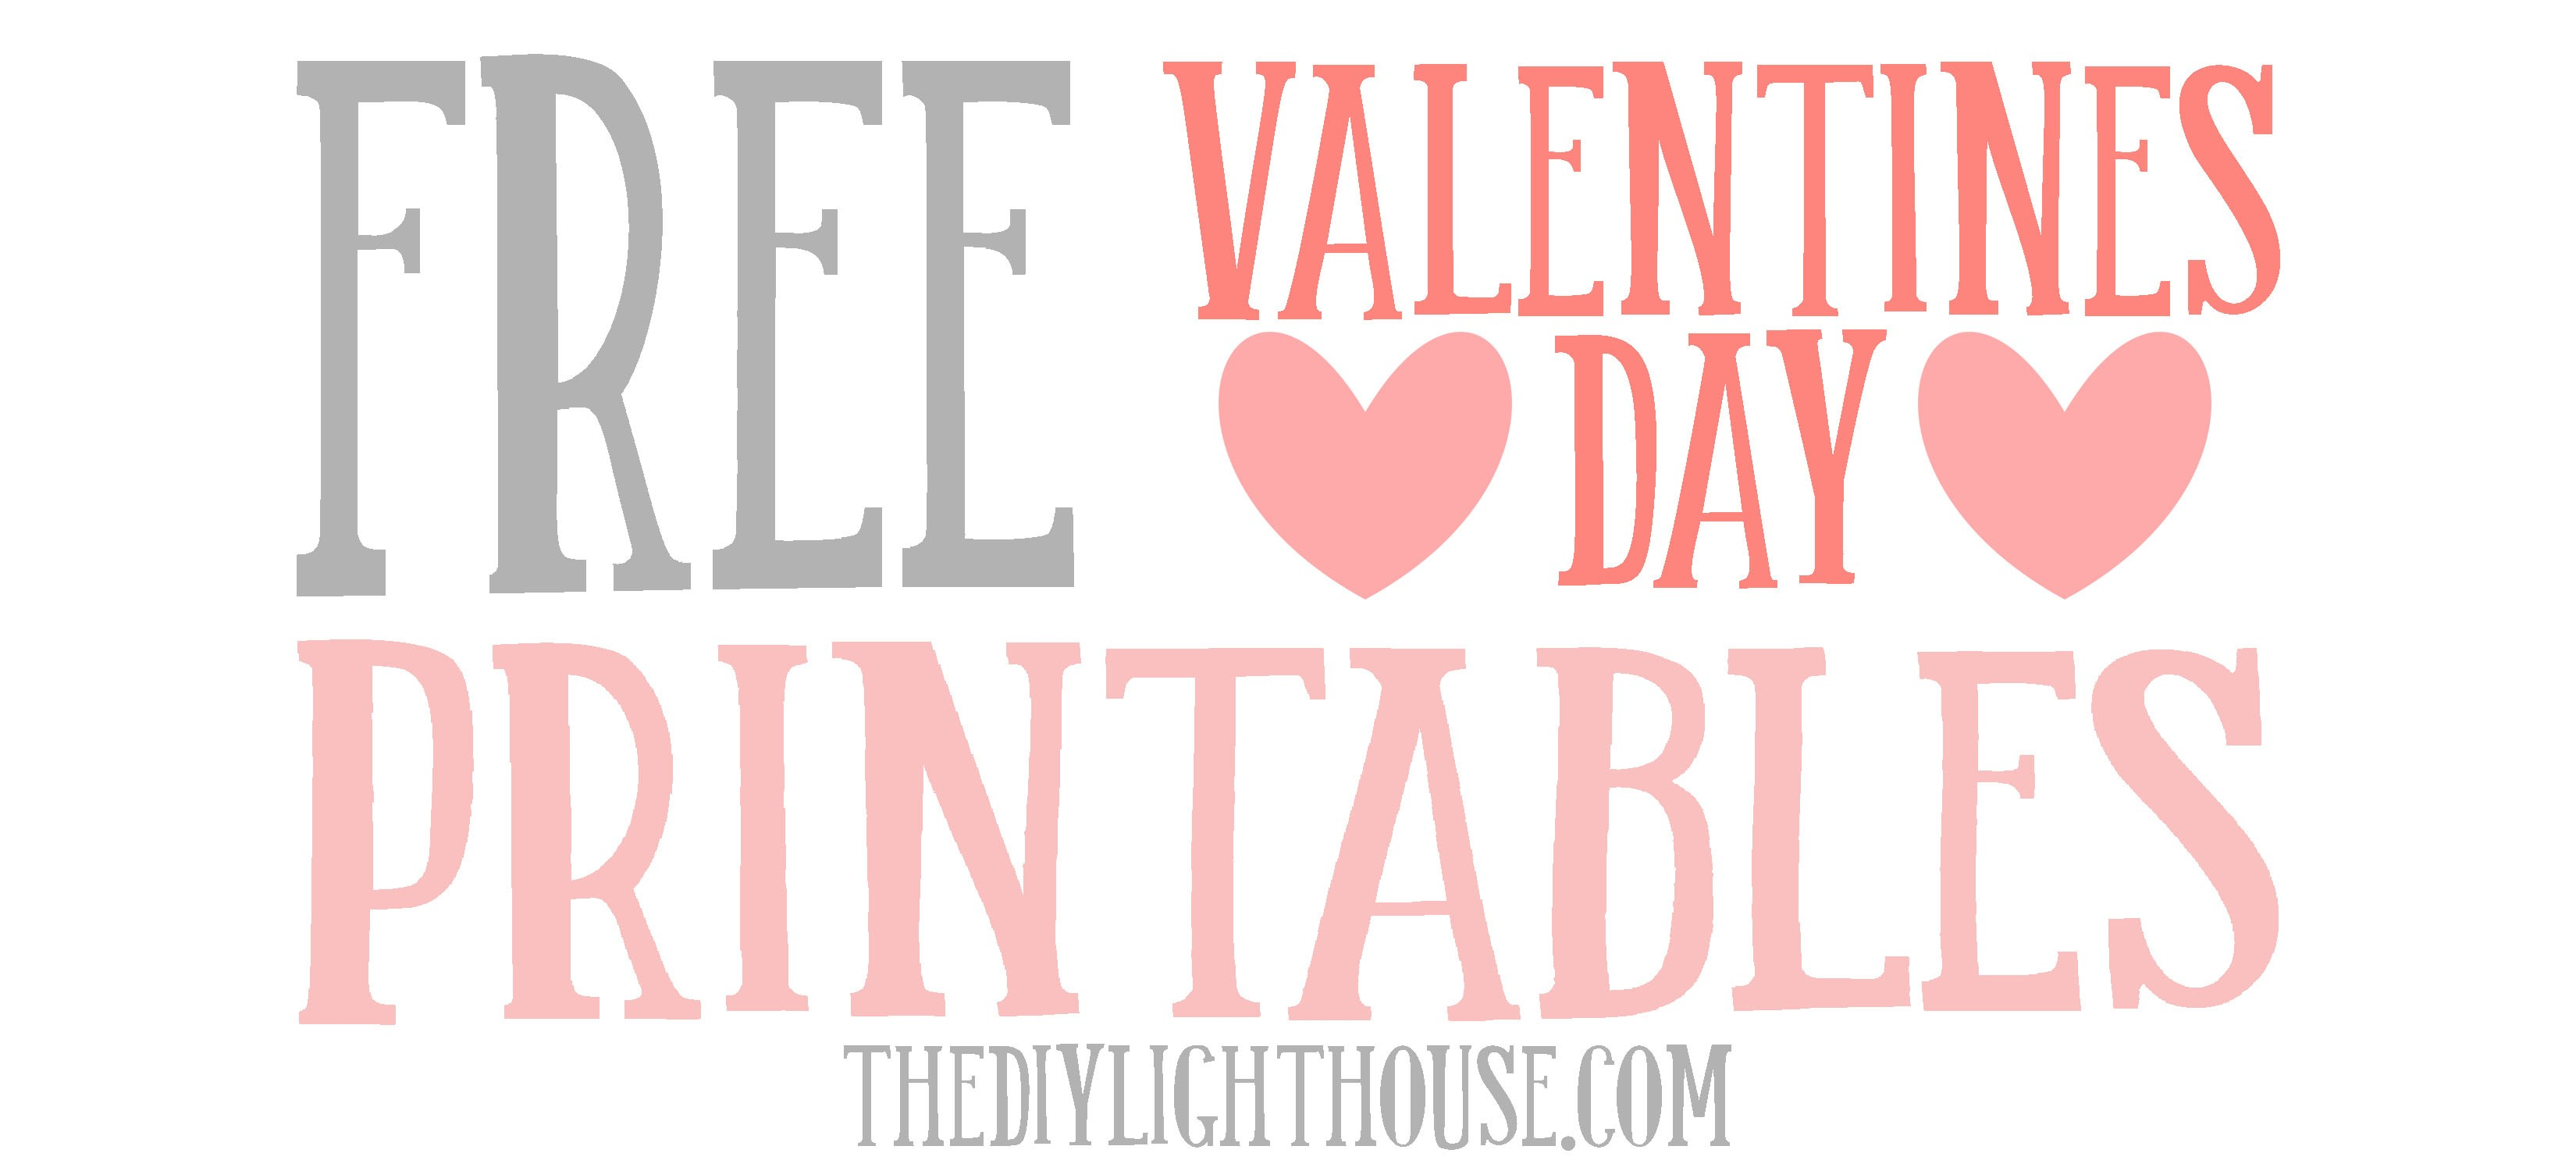 FREE Valentines Day Printables Youll Love The DIY